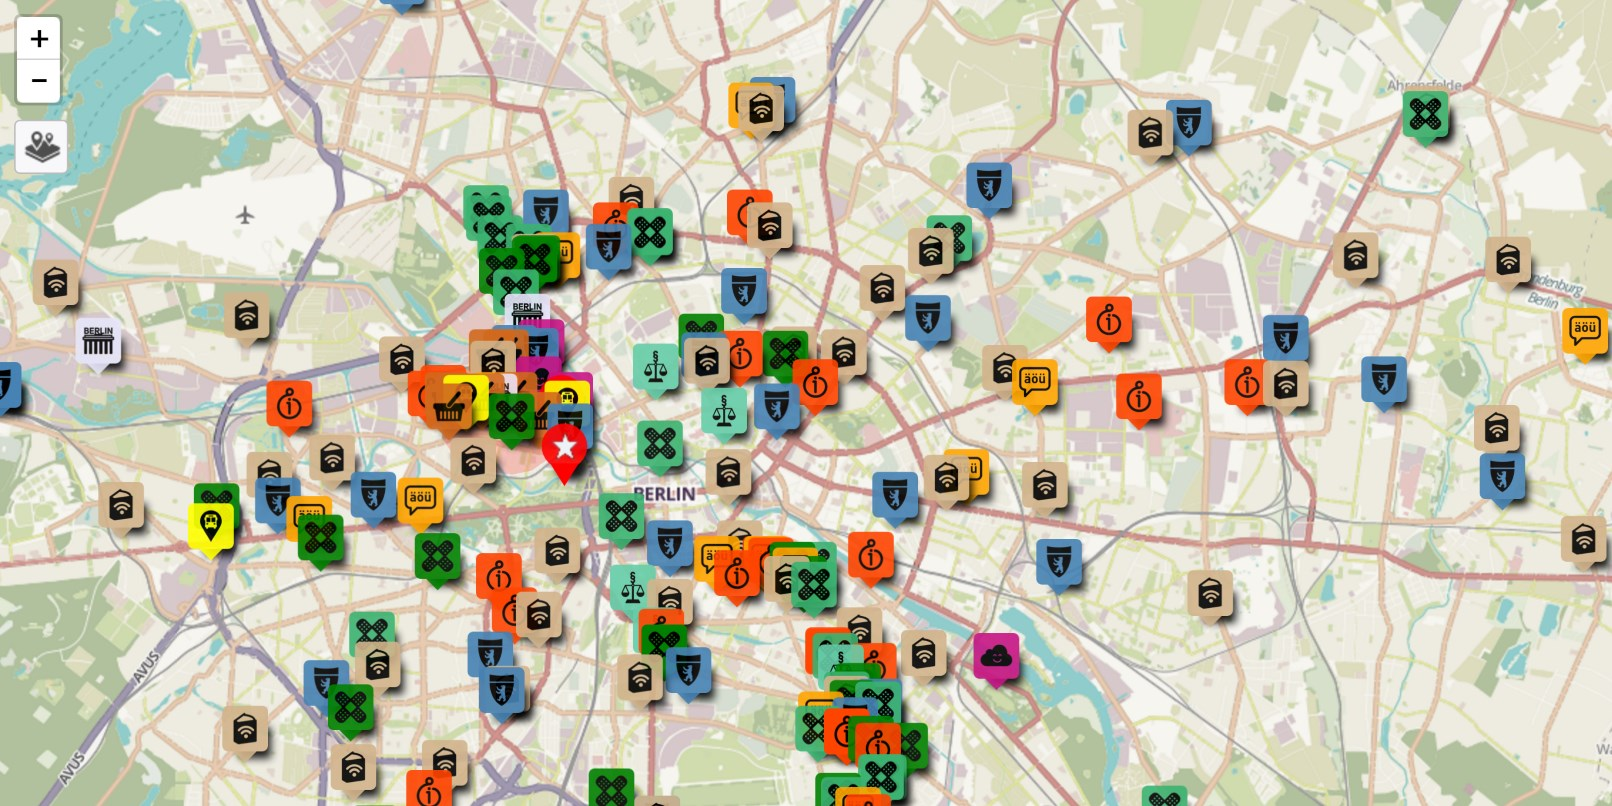 Berlin based refugees create map of resources for newcomers